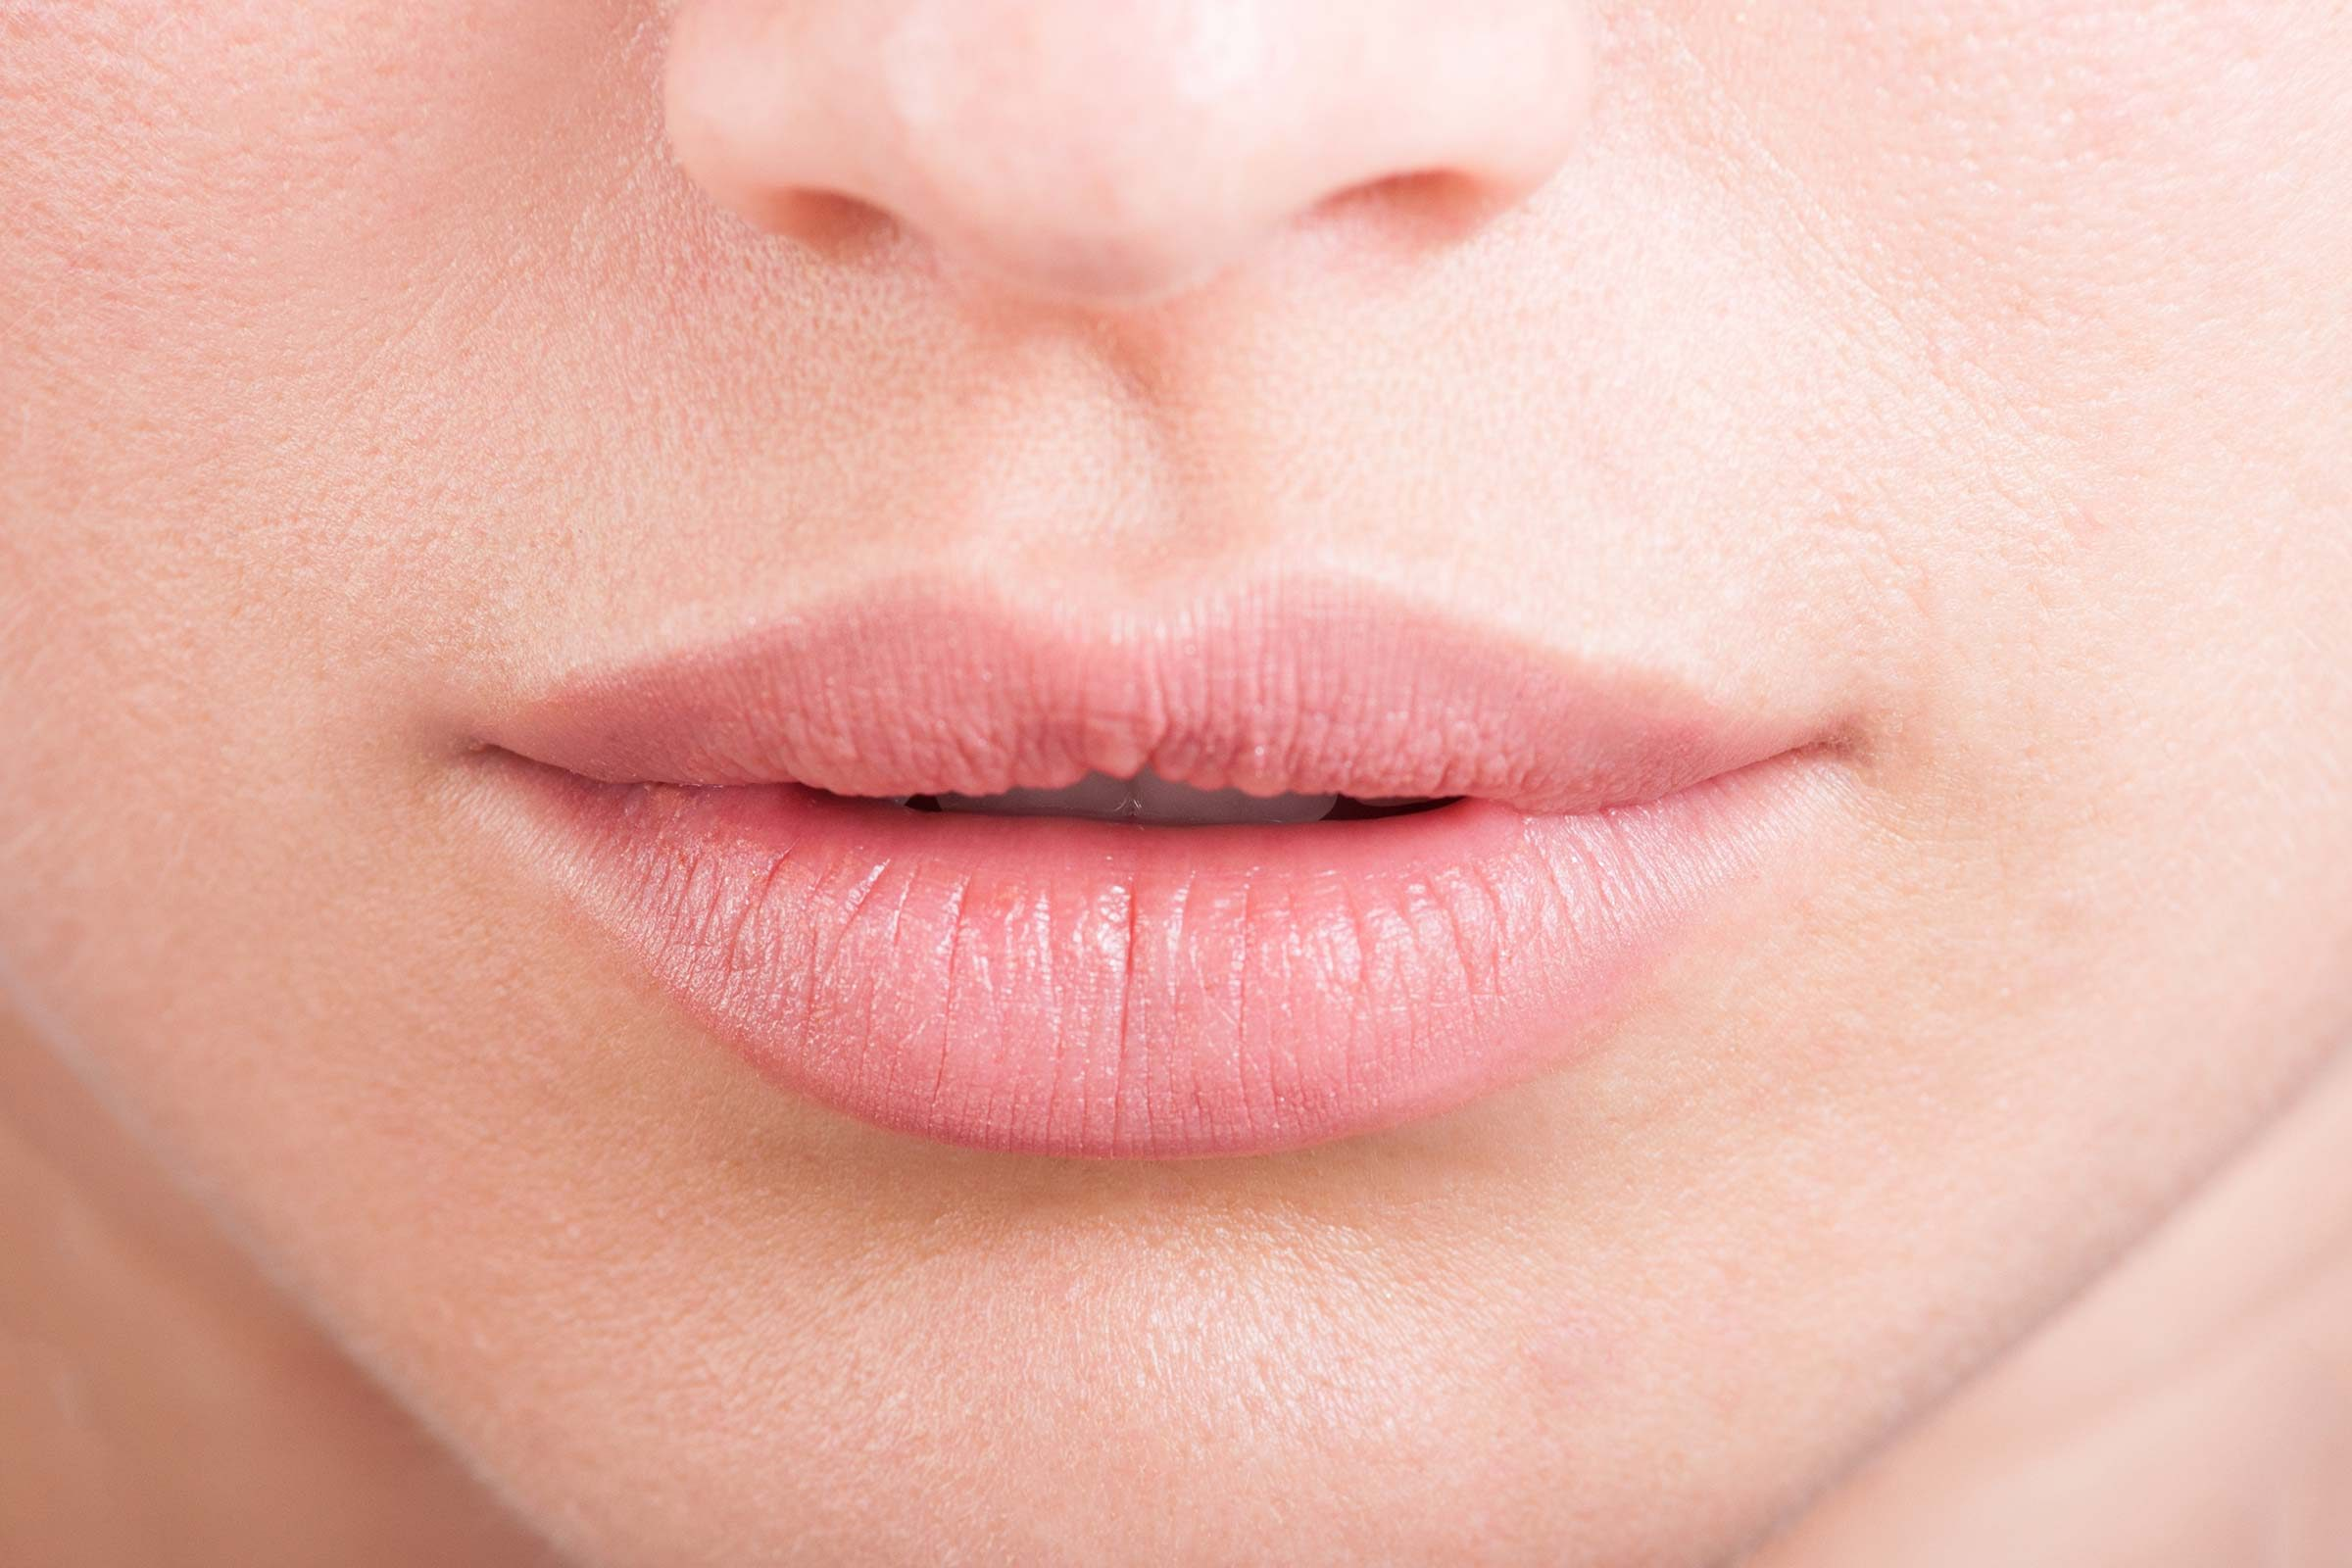 You Notice Swelling Or Discoloration In Your Hands Lips And Feet